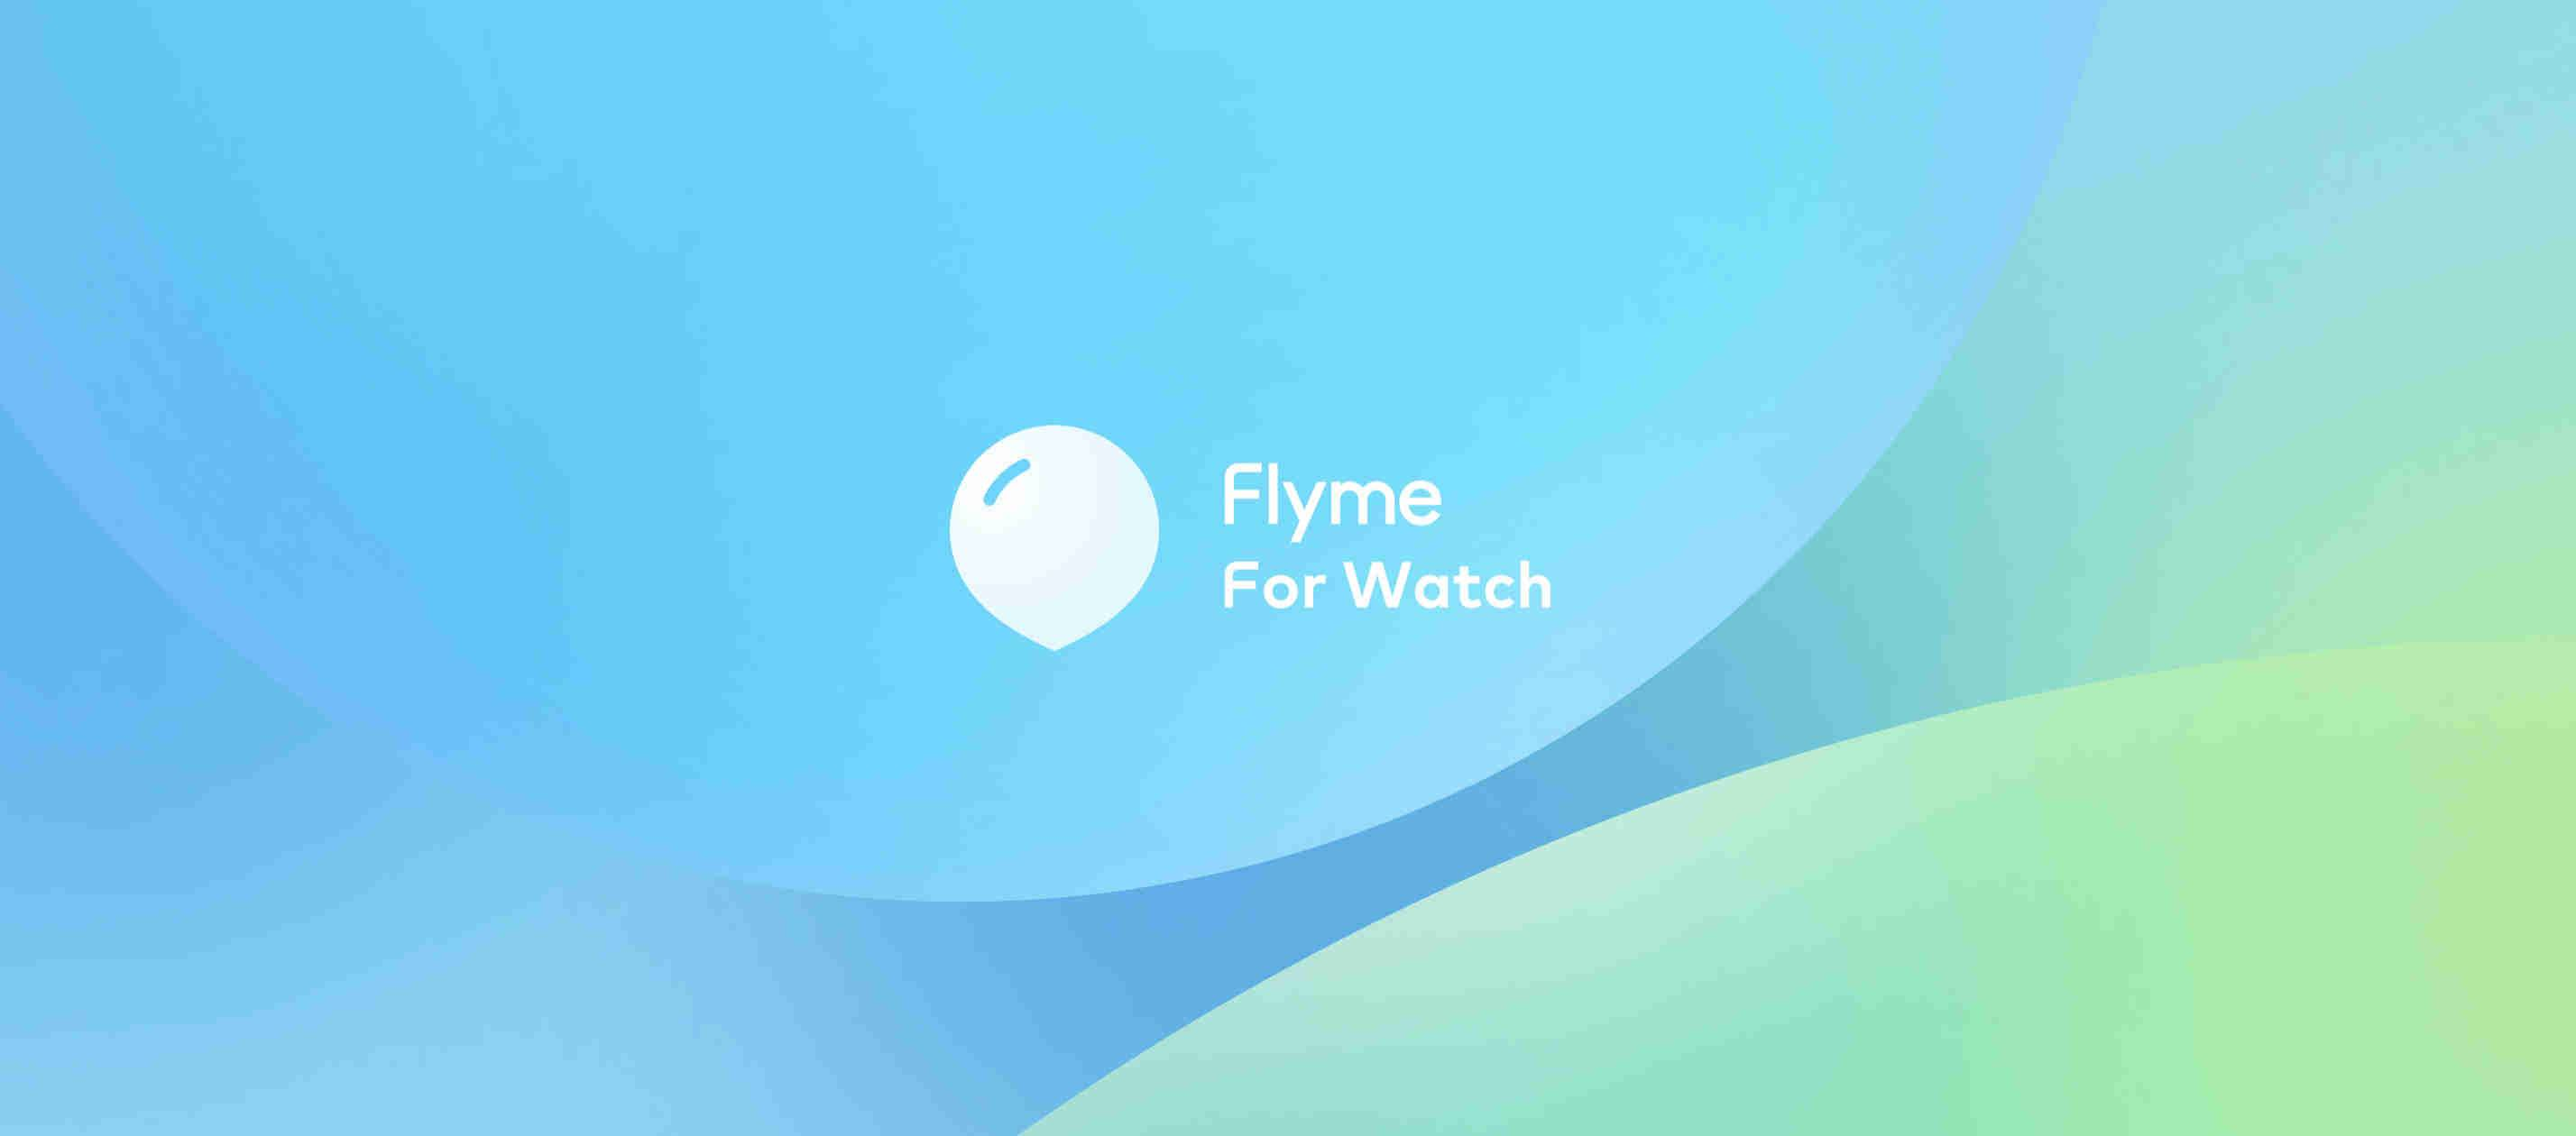 1-Flyme for Watch